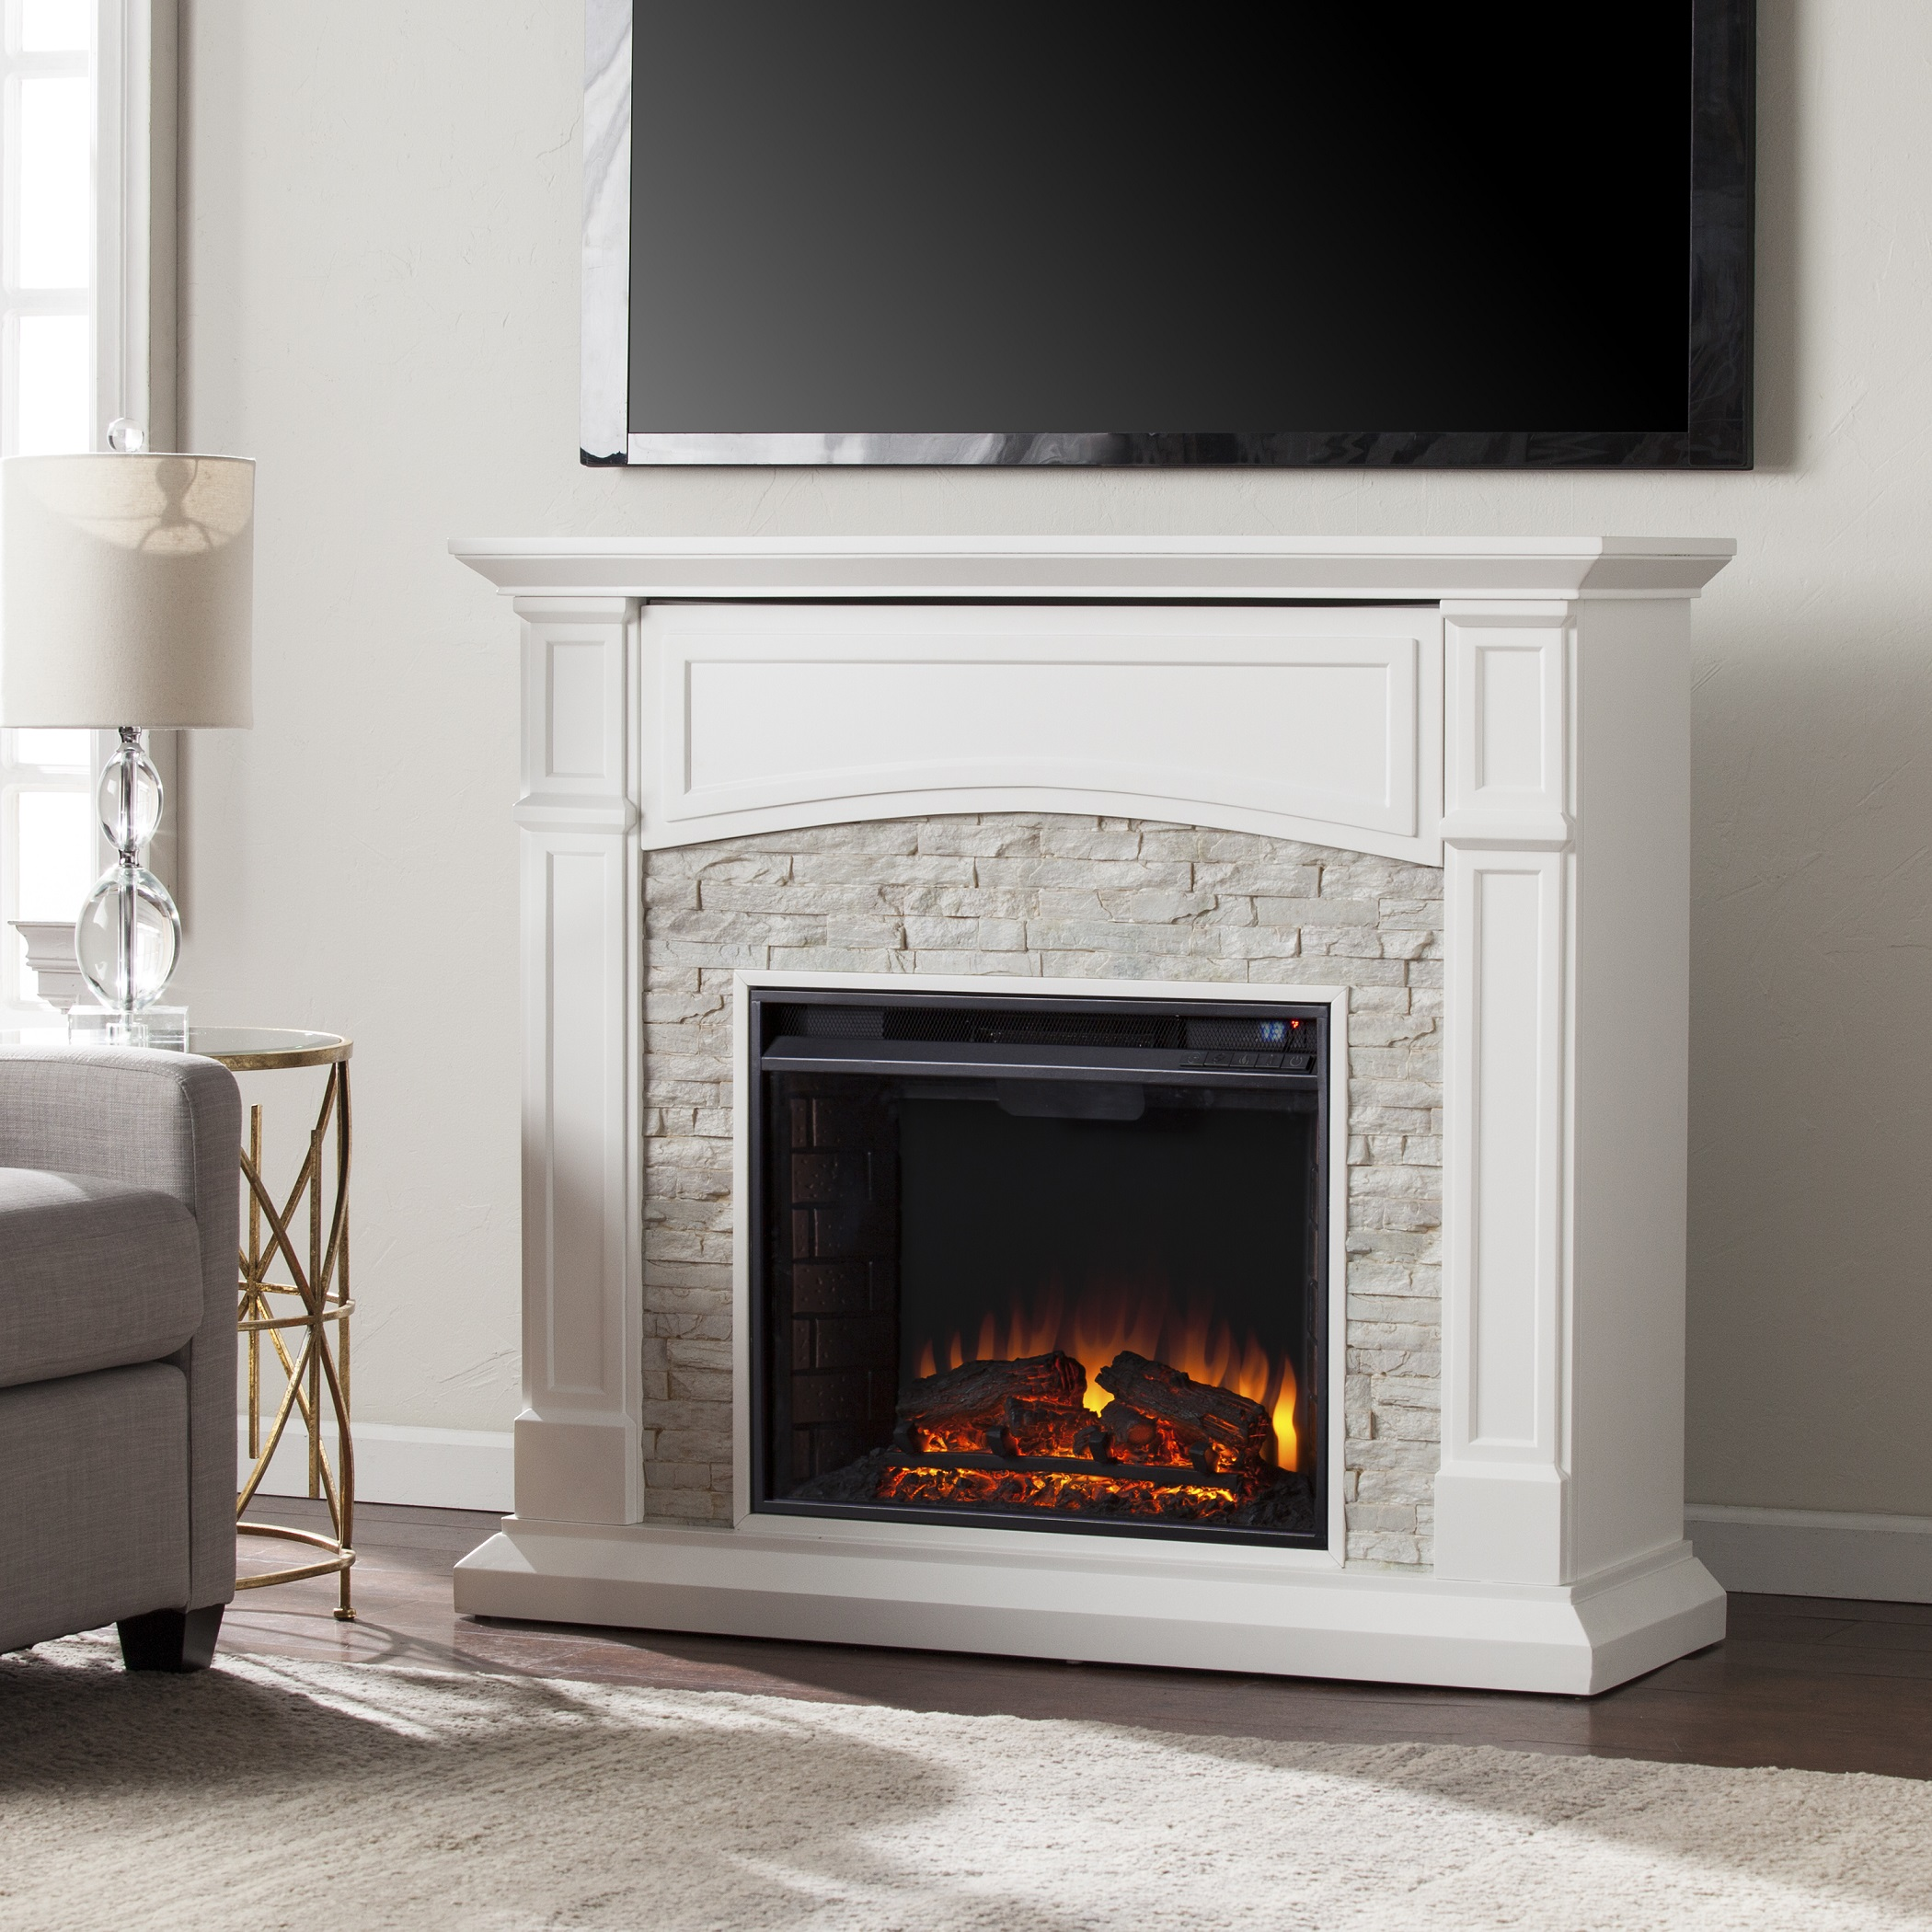 4575 Seneca Electric Media Fireplace  White w White Faux Stone  FE9362  FI9362